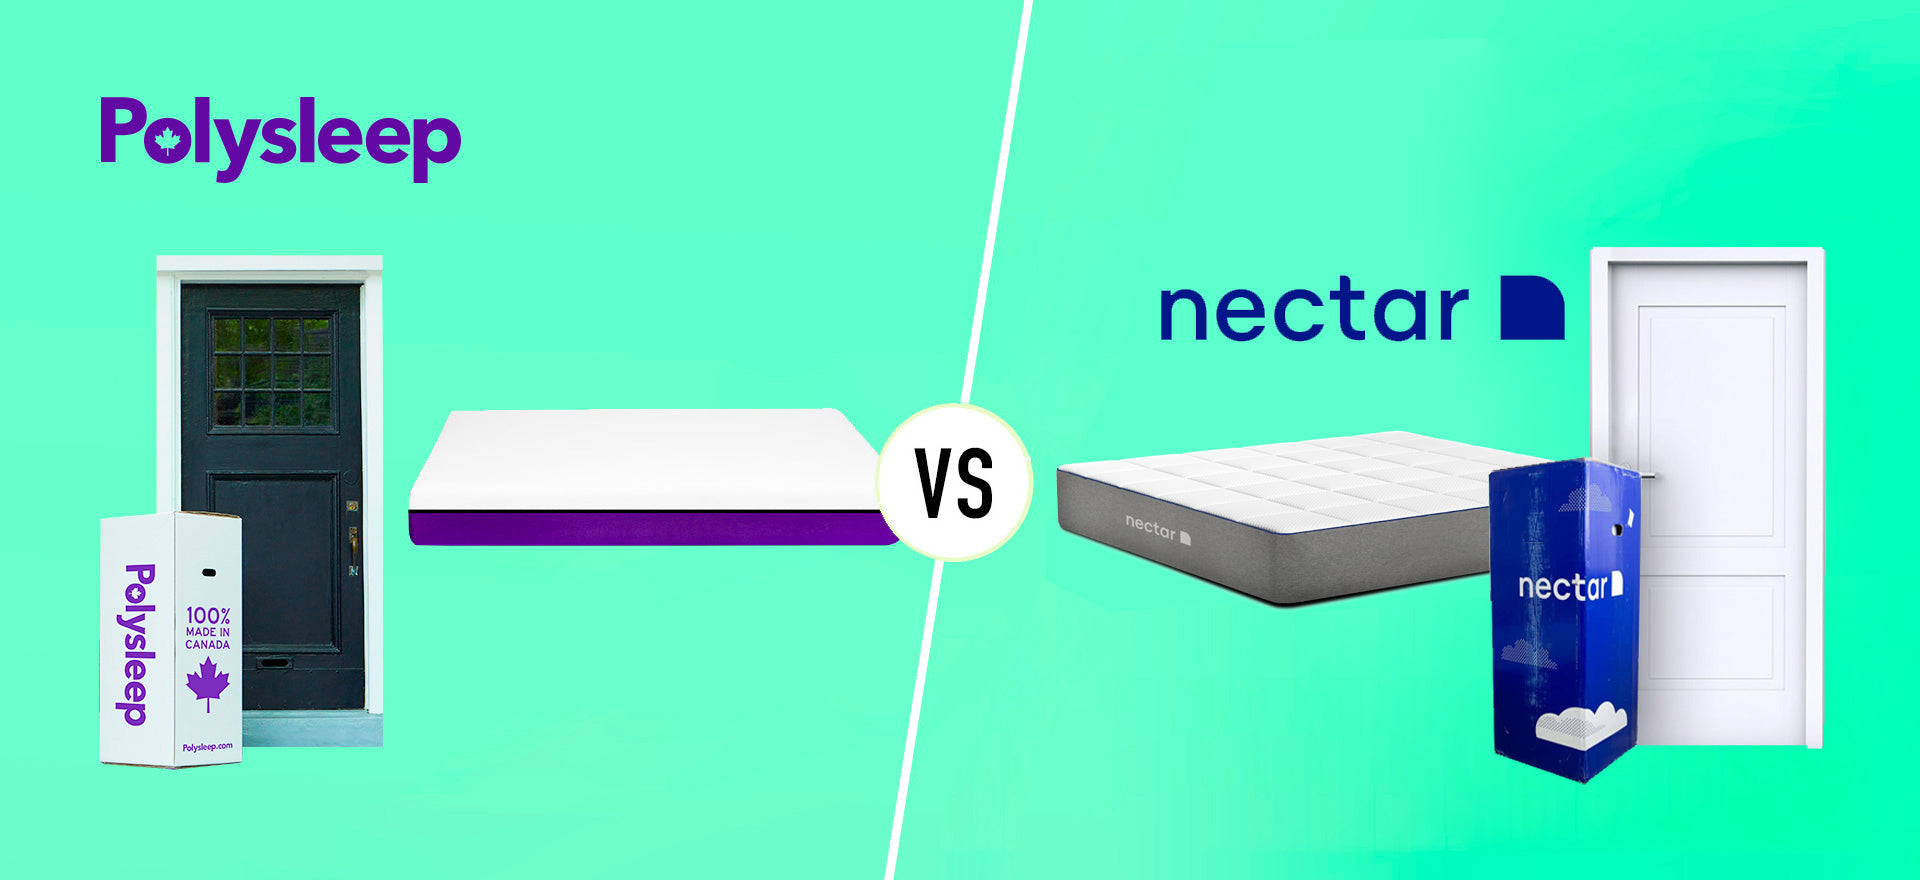 Comparison between the Nectar mattress and the Polysleep mattress